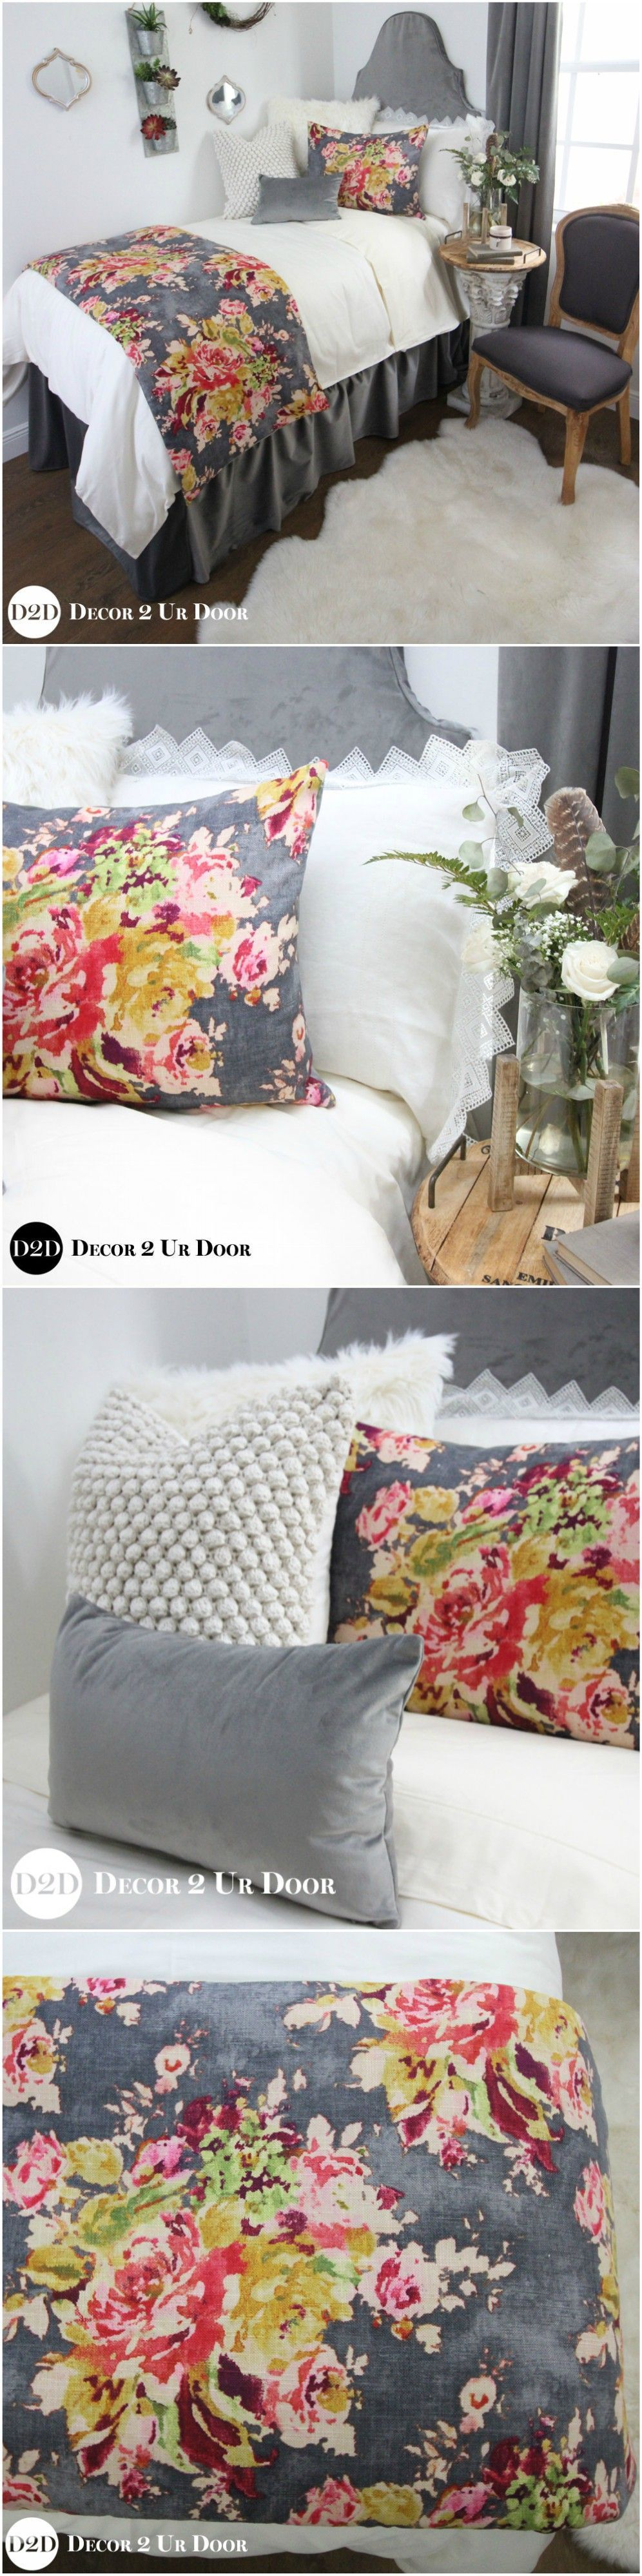 lilyboutique cute dorm room and decor g cool bedding pink